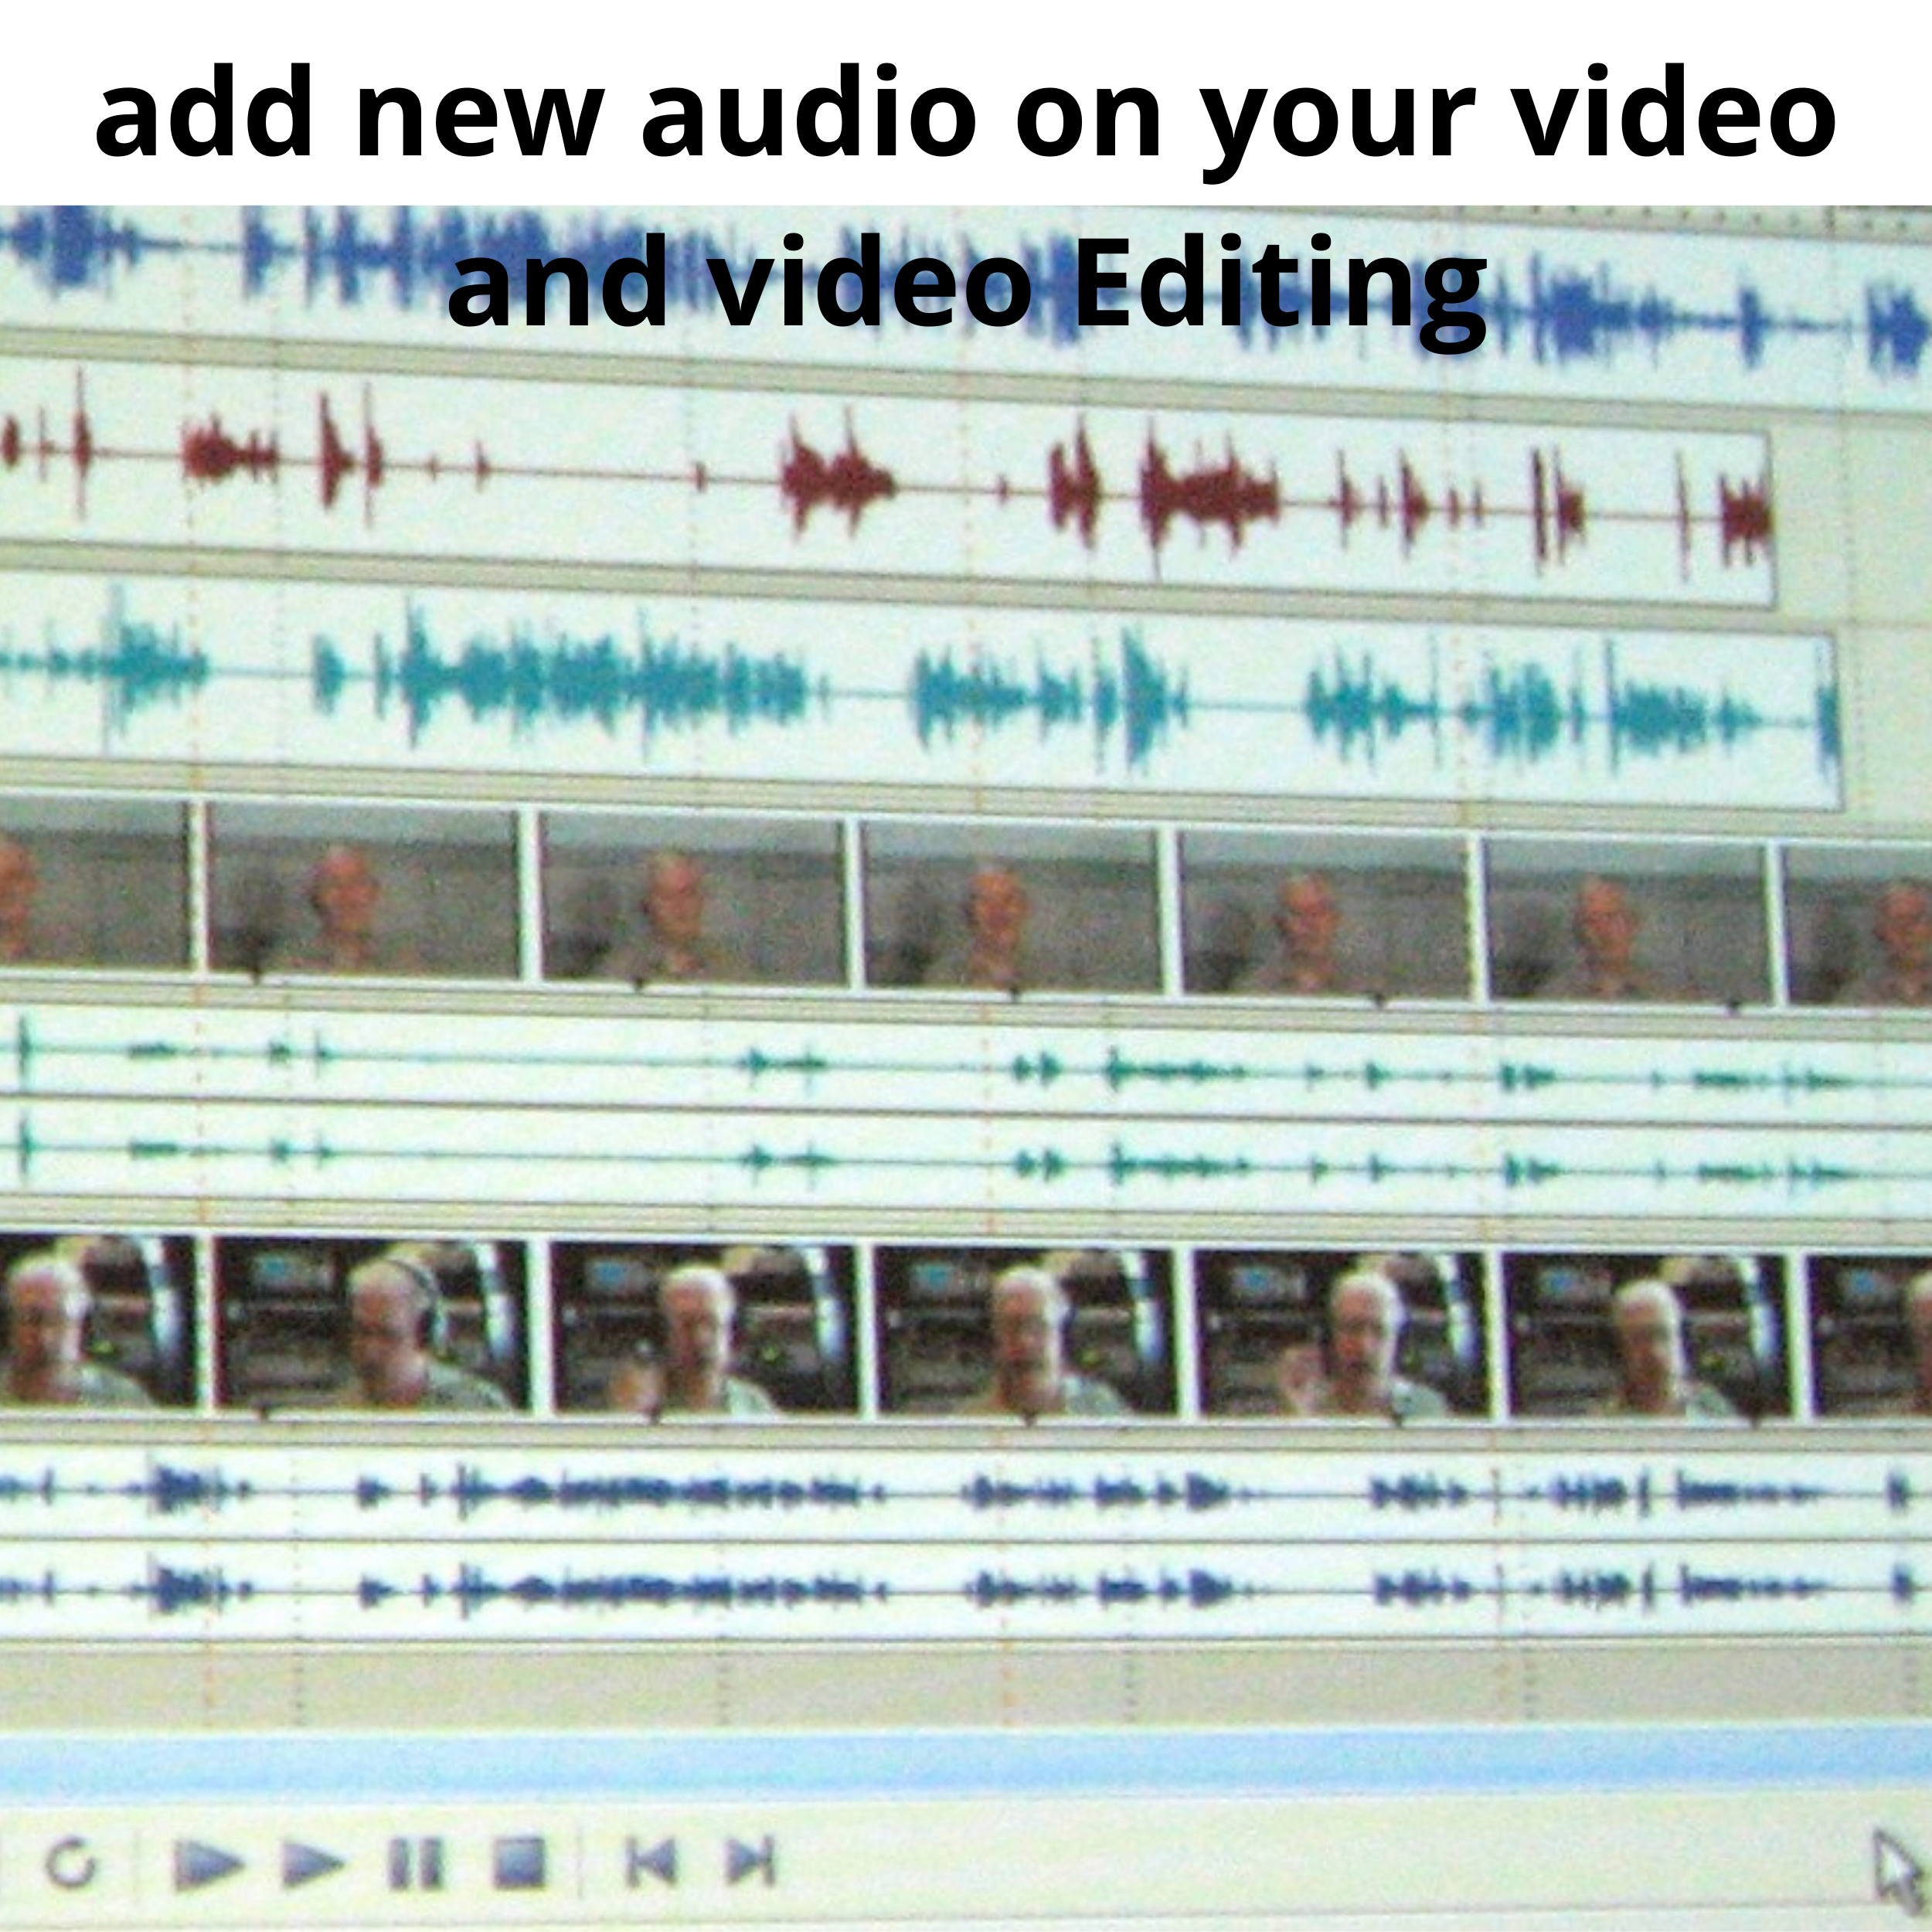 i will add new audio on your video and video editing